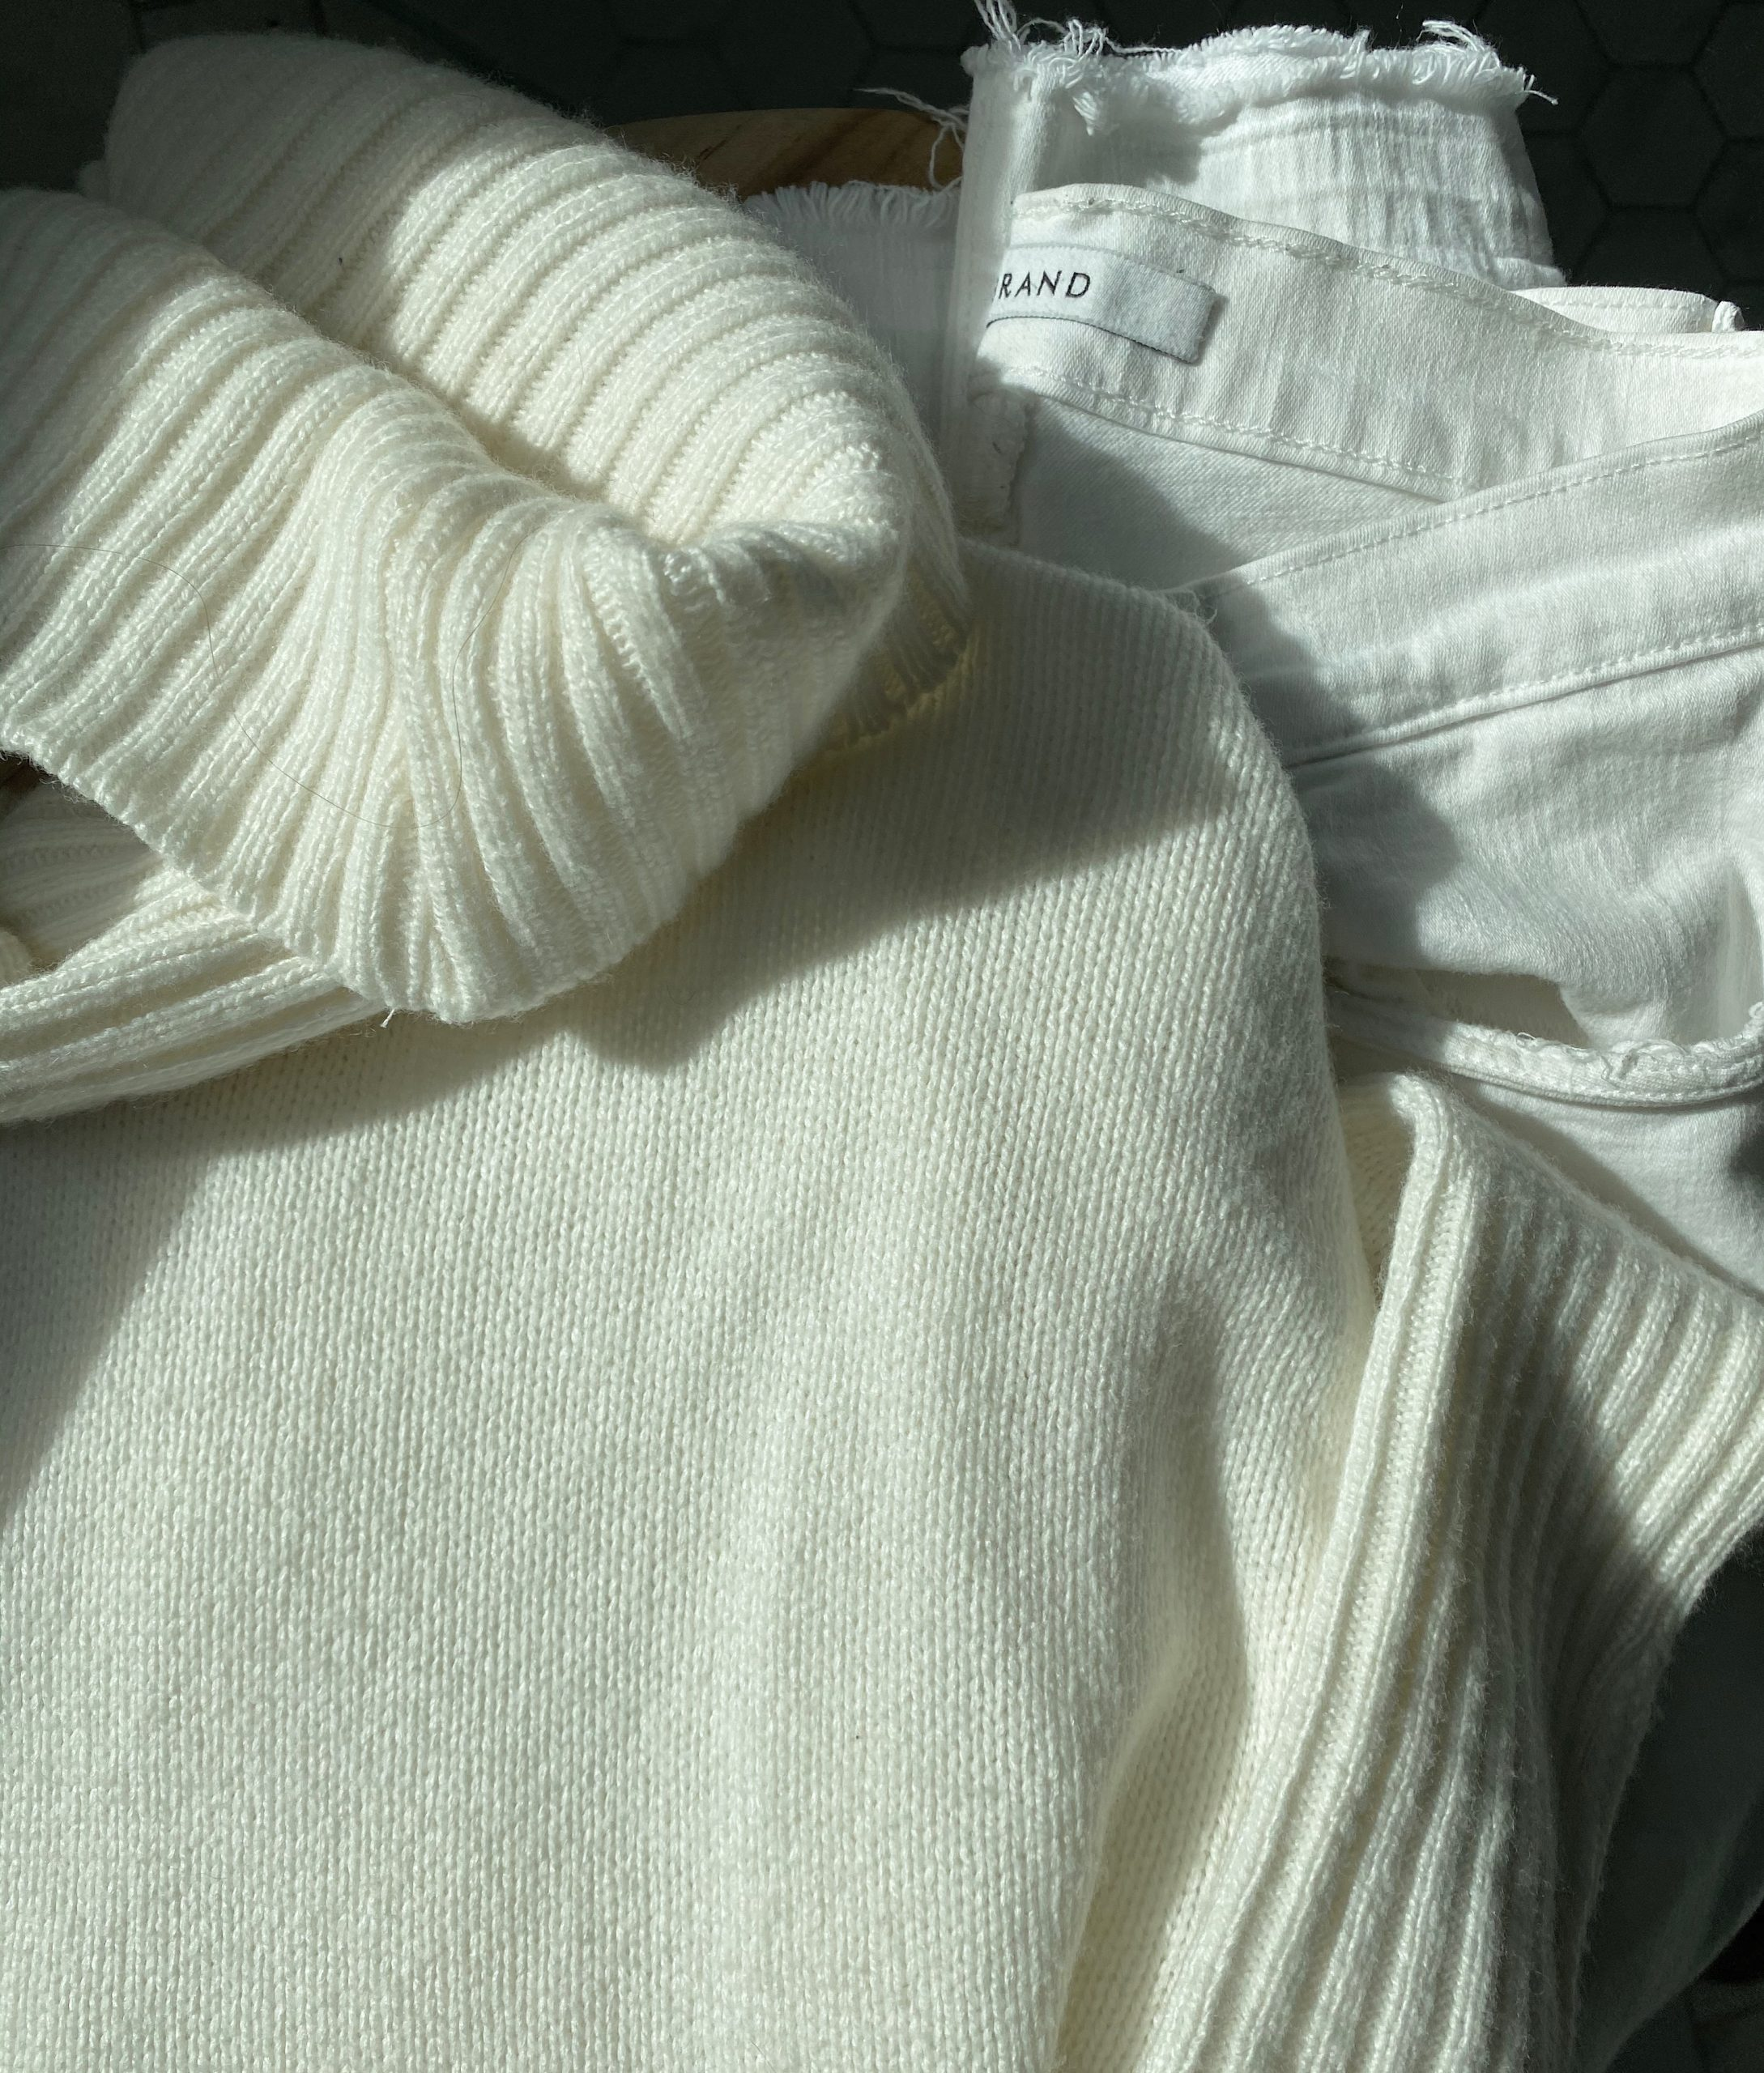 Winter White Jeans for an Uplift